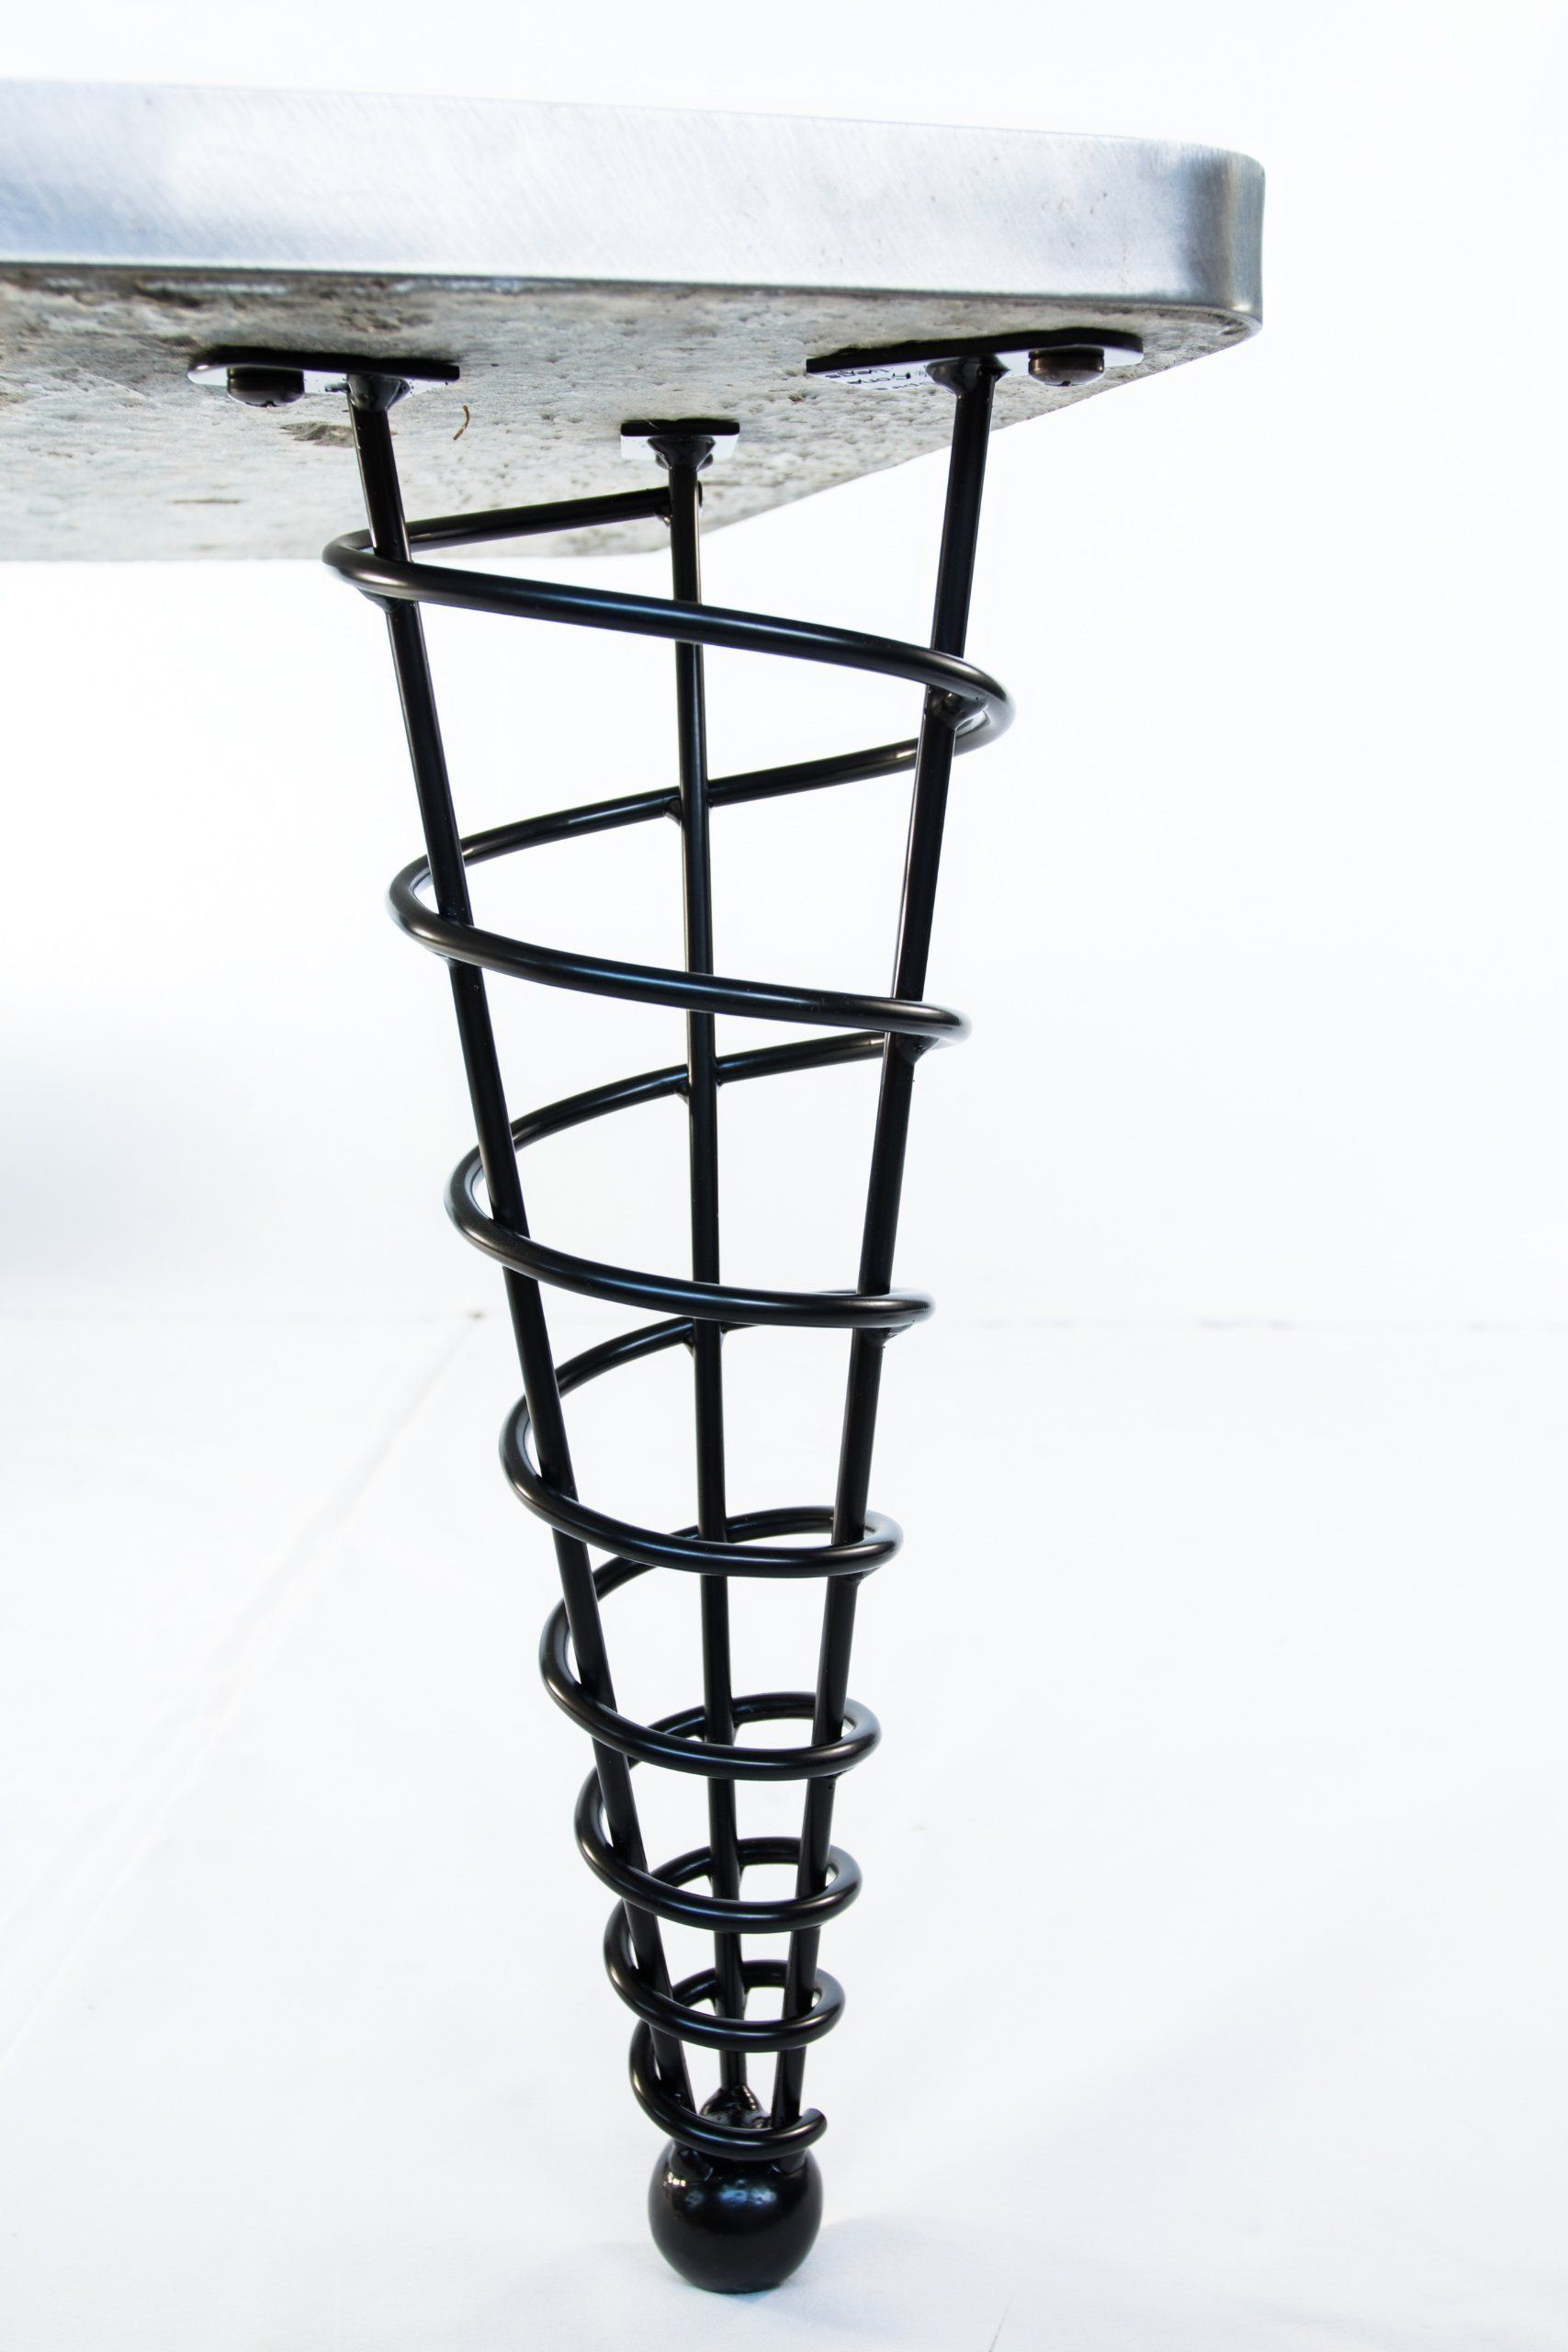 Bench or Coffee Table Legs, Unique Handmade, 16-inch Height, Set of Four. These striking modern table legs grew from a dinner napkin sketch, and are made with our own hands. They are made of 1/4-inch cold steel round bar, formed and welded into a spiral cone, ending at a 1-1/2-inch diameter solid steel ball. They are very sturdy legs and can support a heavy table. Powder coated semi gloss black suitable for indoor or outdoor use. Set of four table legs.